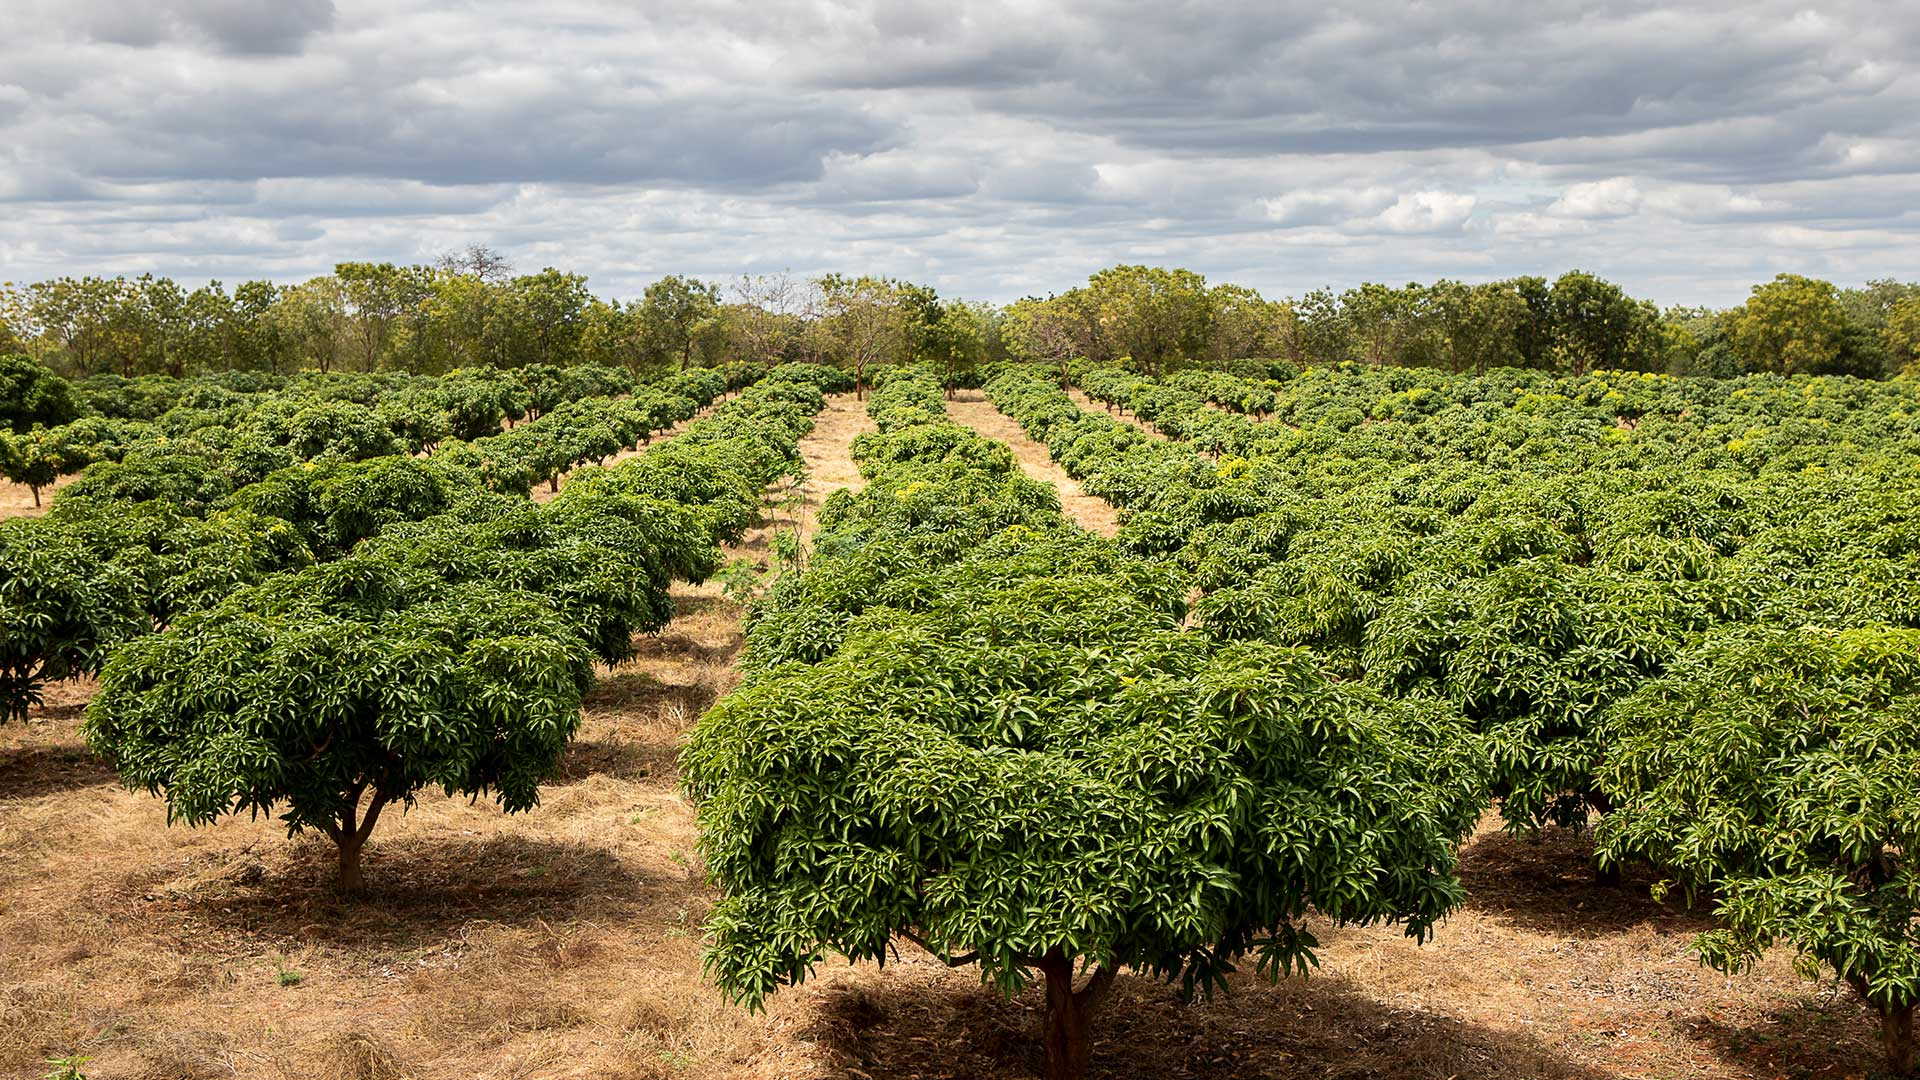 Mango trees on the test farm in Kibwezi